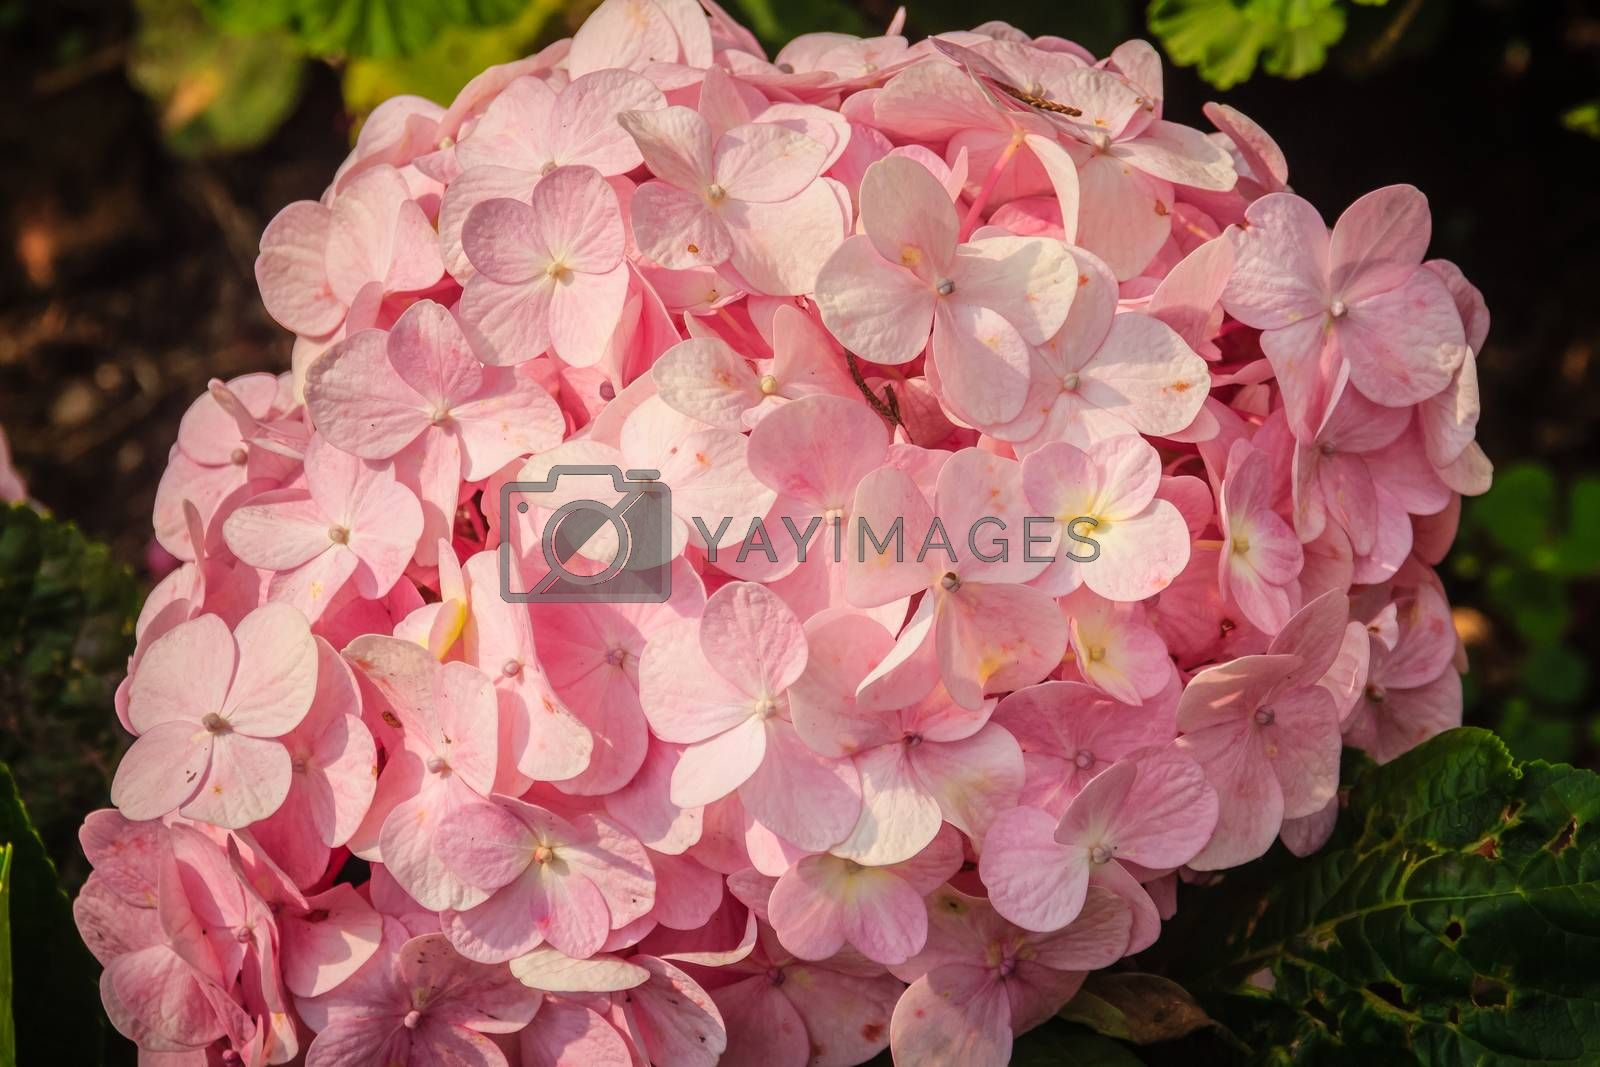 Beautiful pink Hydrangea macrophylla flowers background. Common names include bigleaf, French, lacecap, mophead hydrangea, penny mac and hortensia.